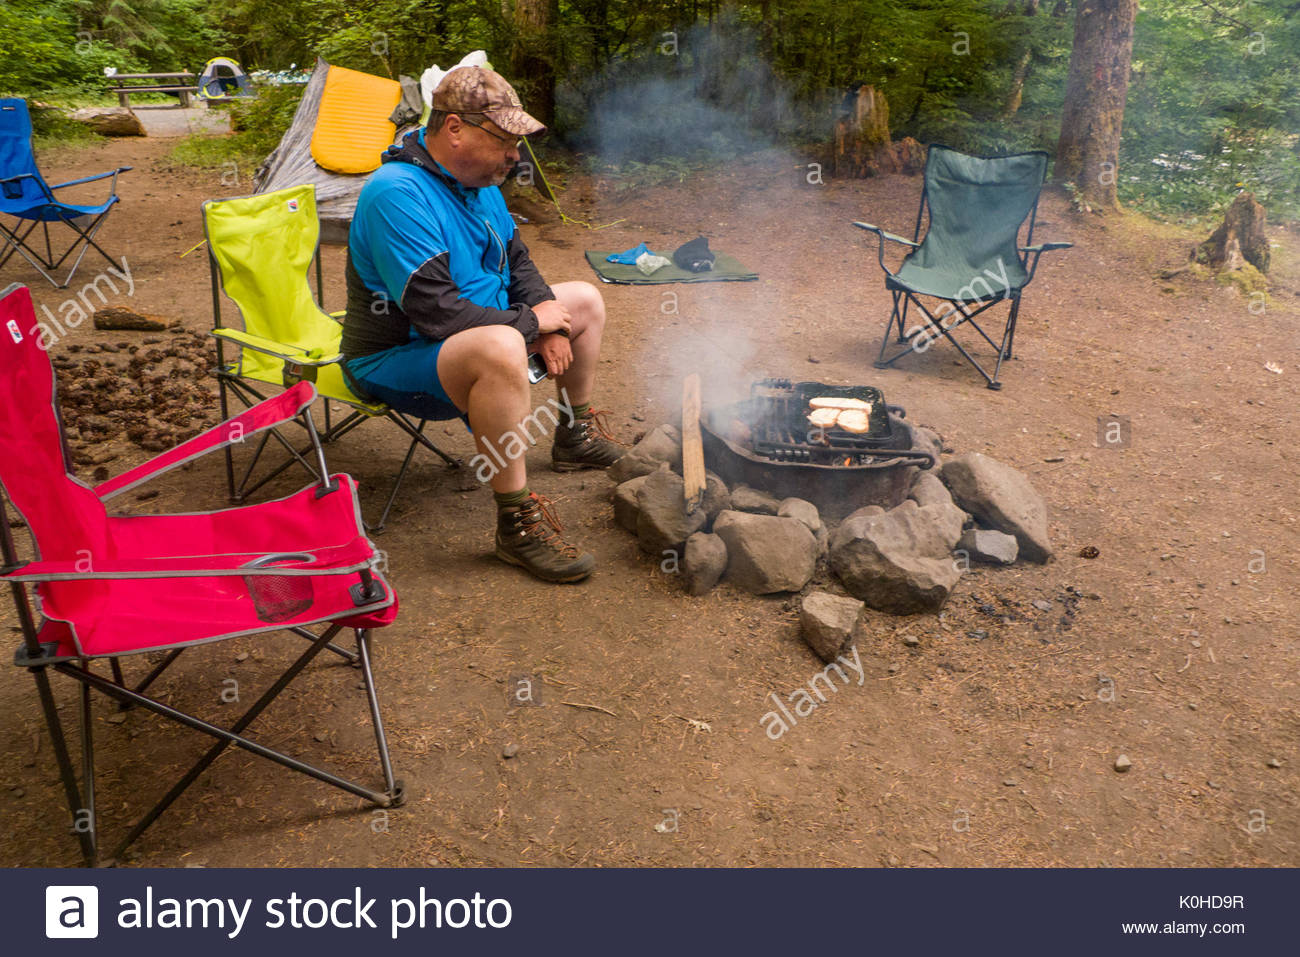 Man Sitting On Folding Camp Chair In The Riverside Campground Watching Camp  Fire, Willamette National